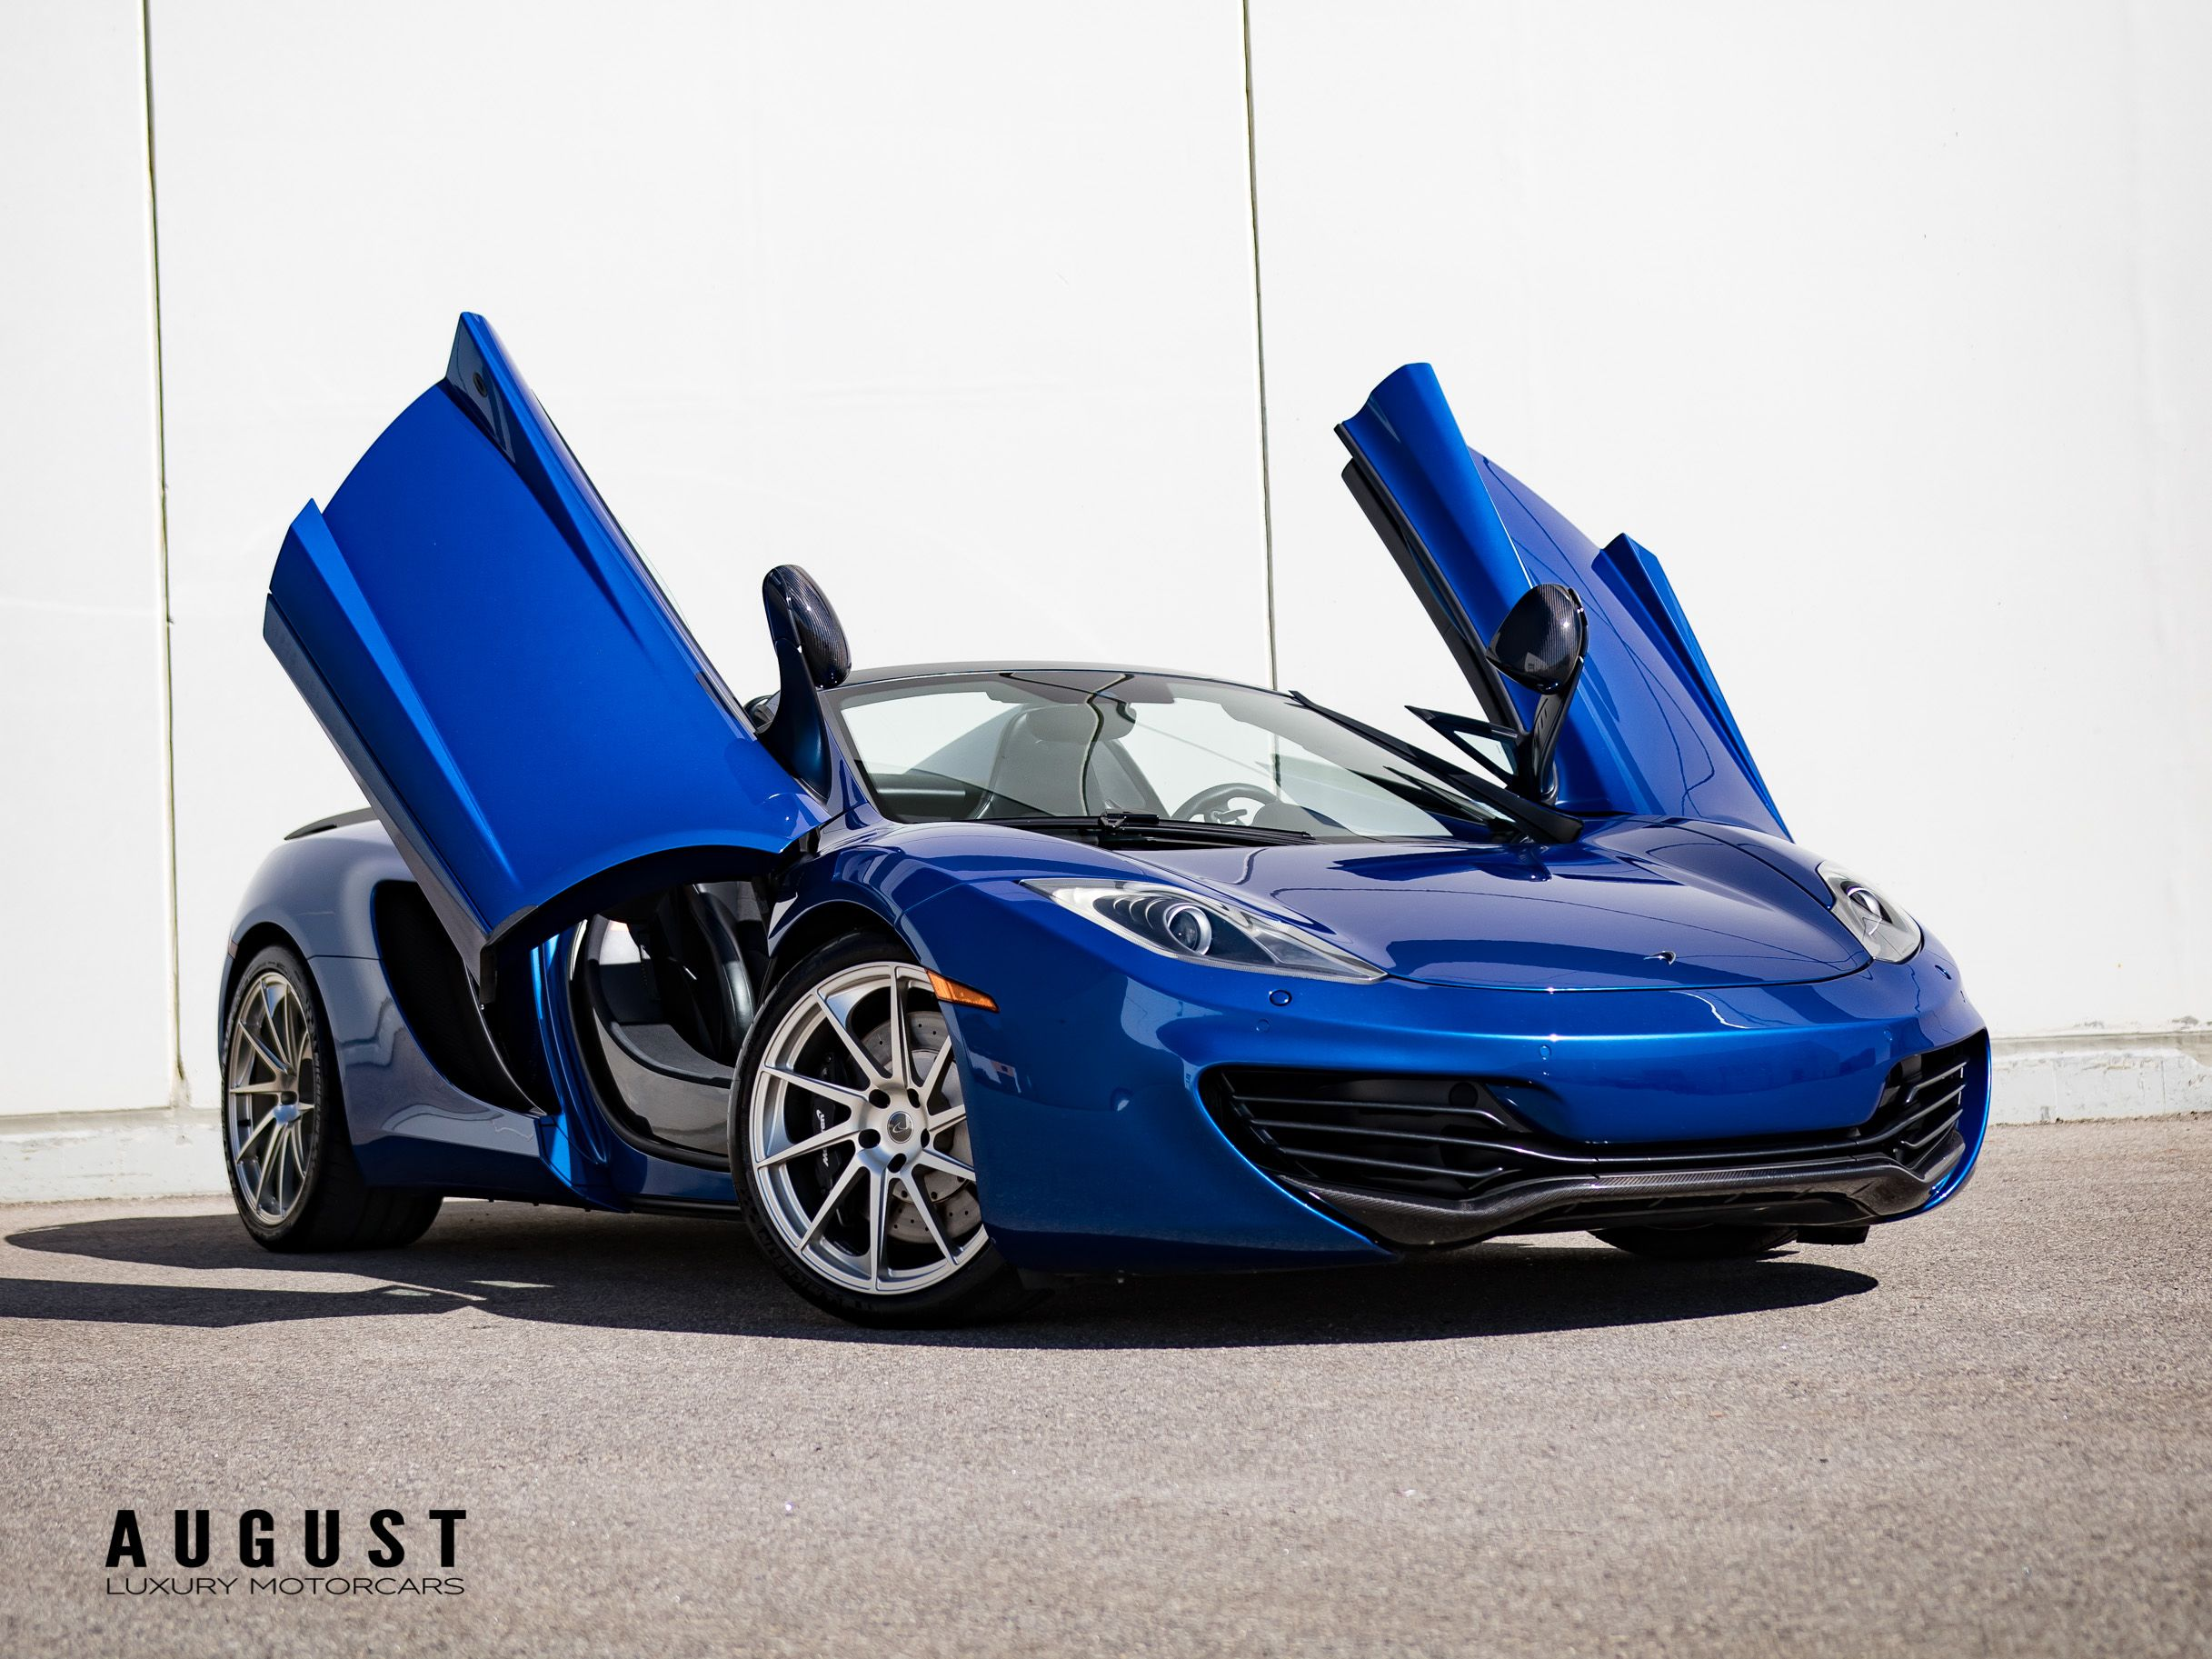 Pre-Owned 2014 McLaren MP4-12C Spider 800 HP Package